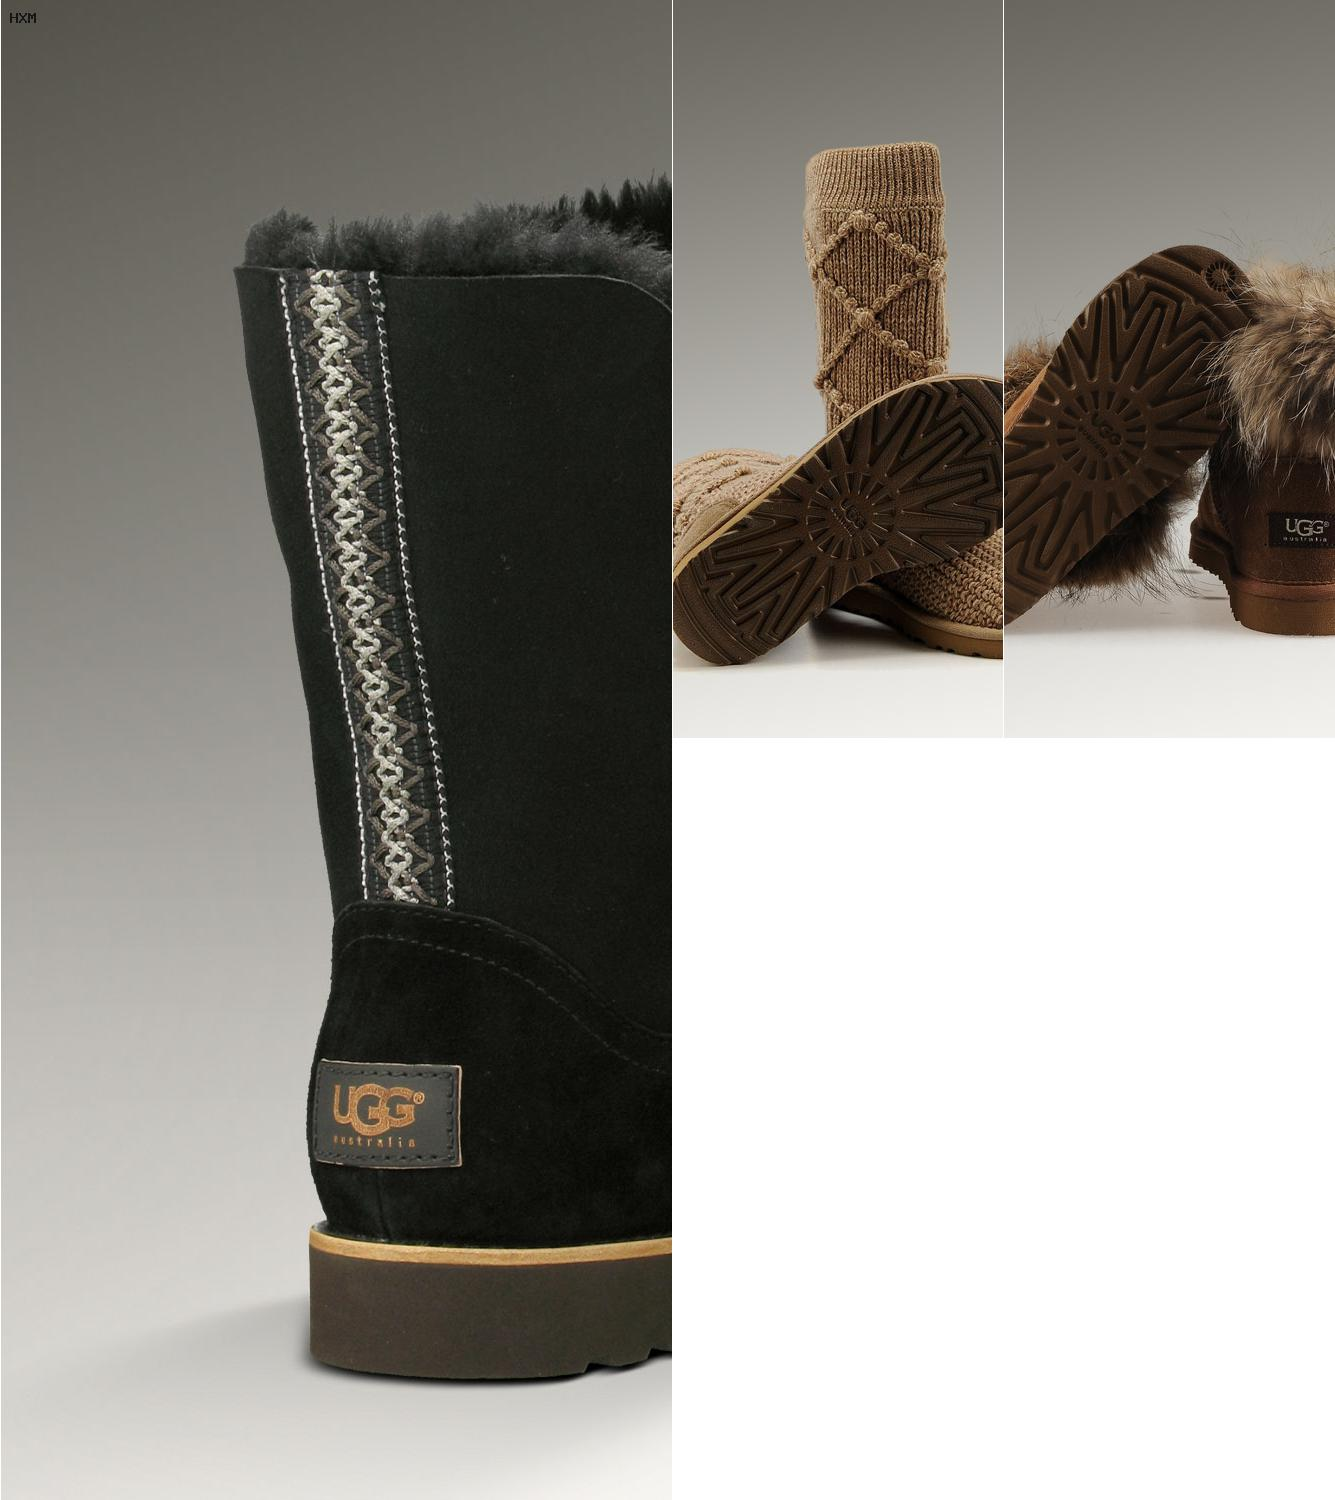 ugg strass noeud